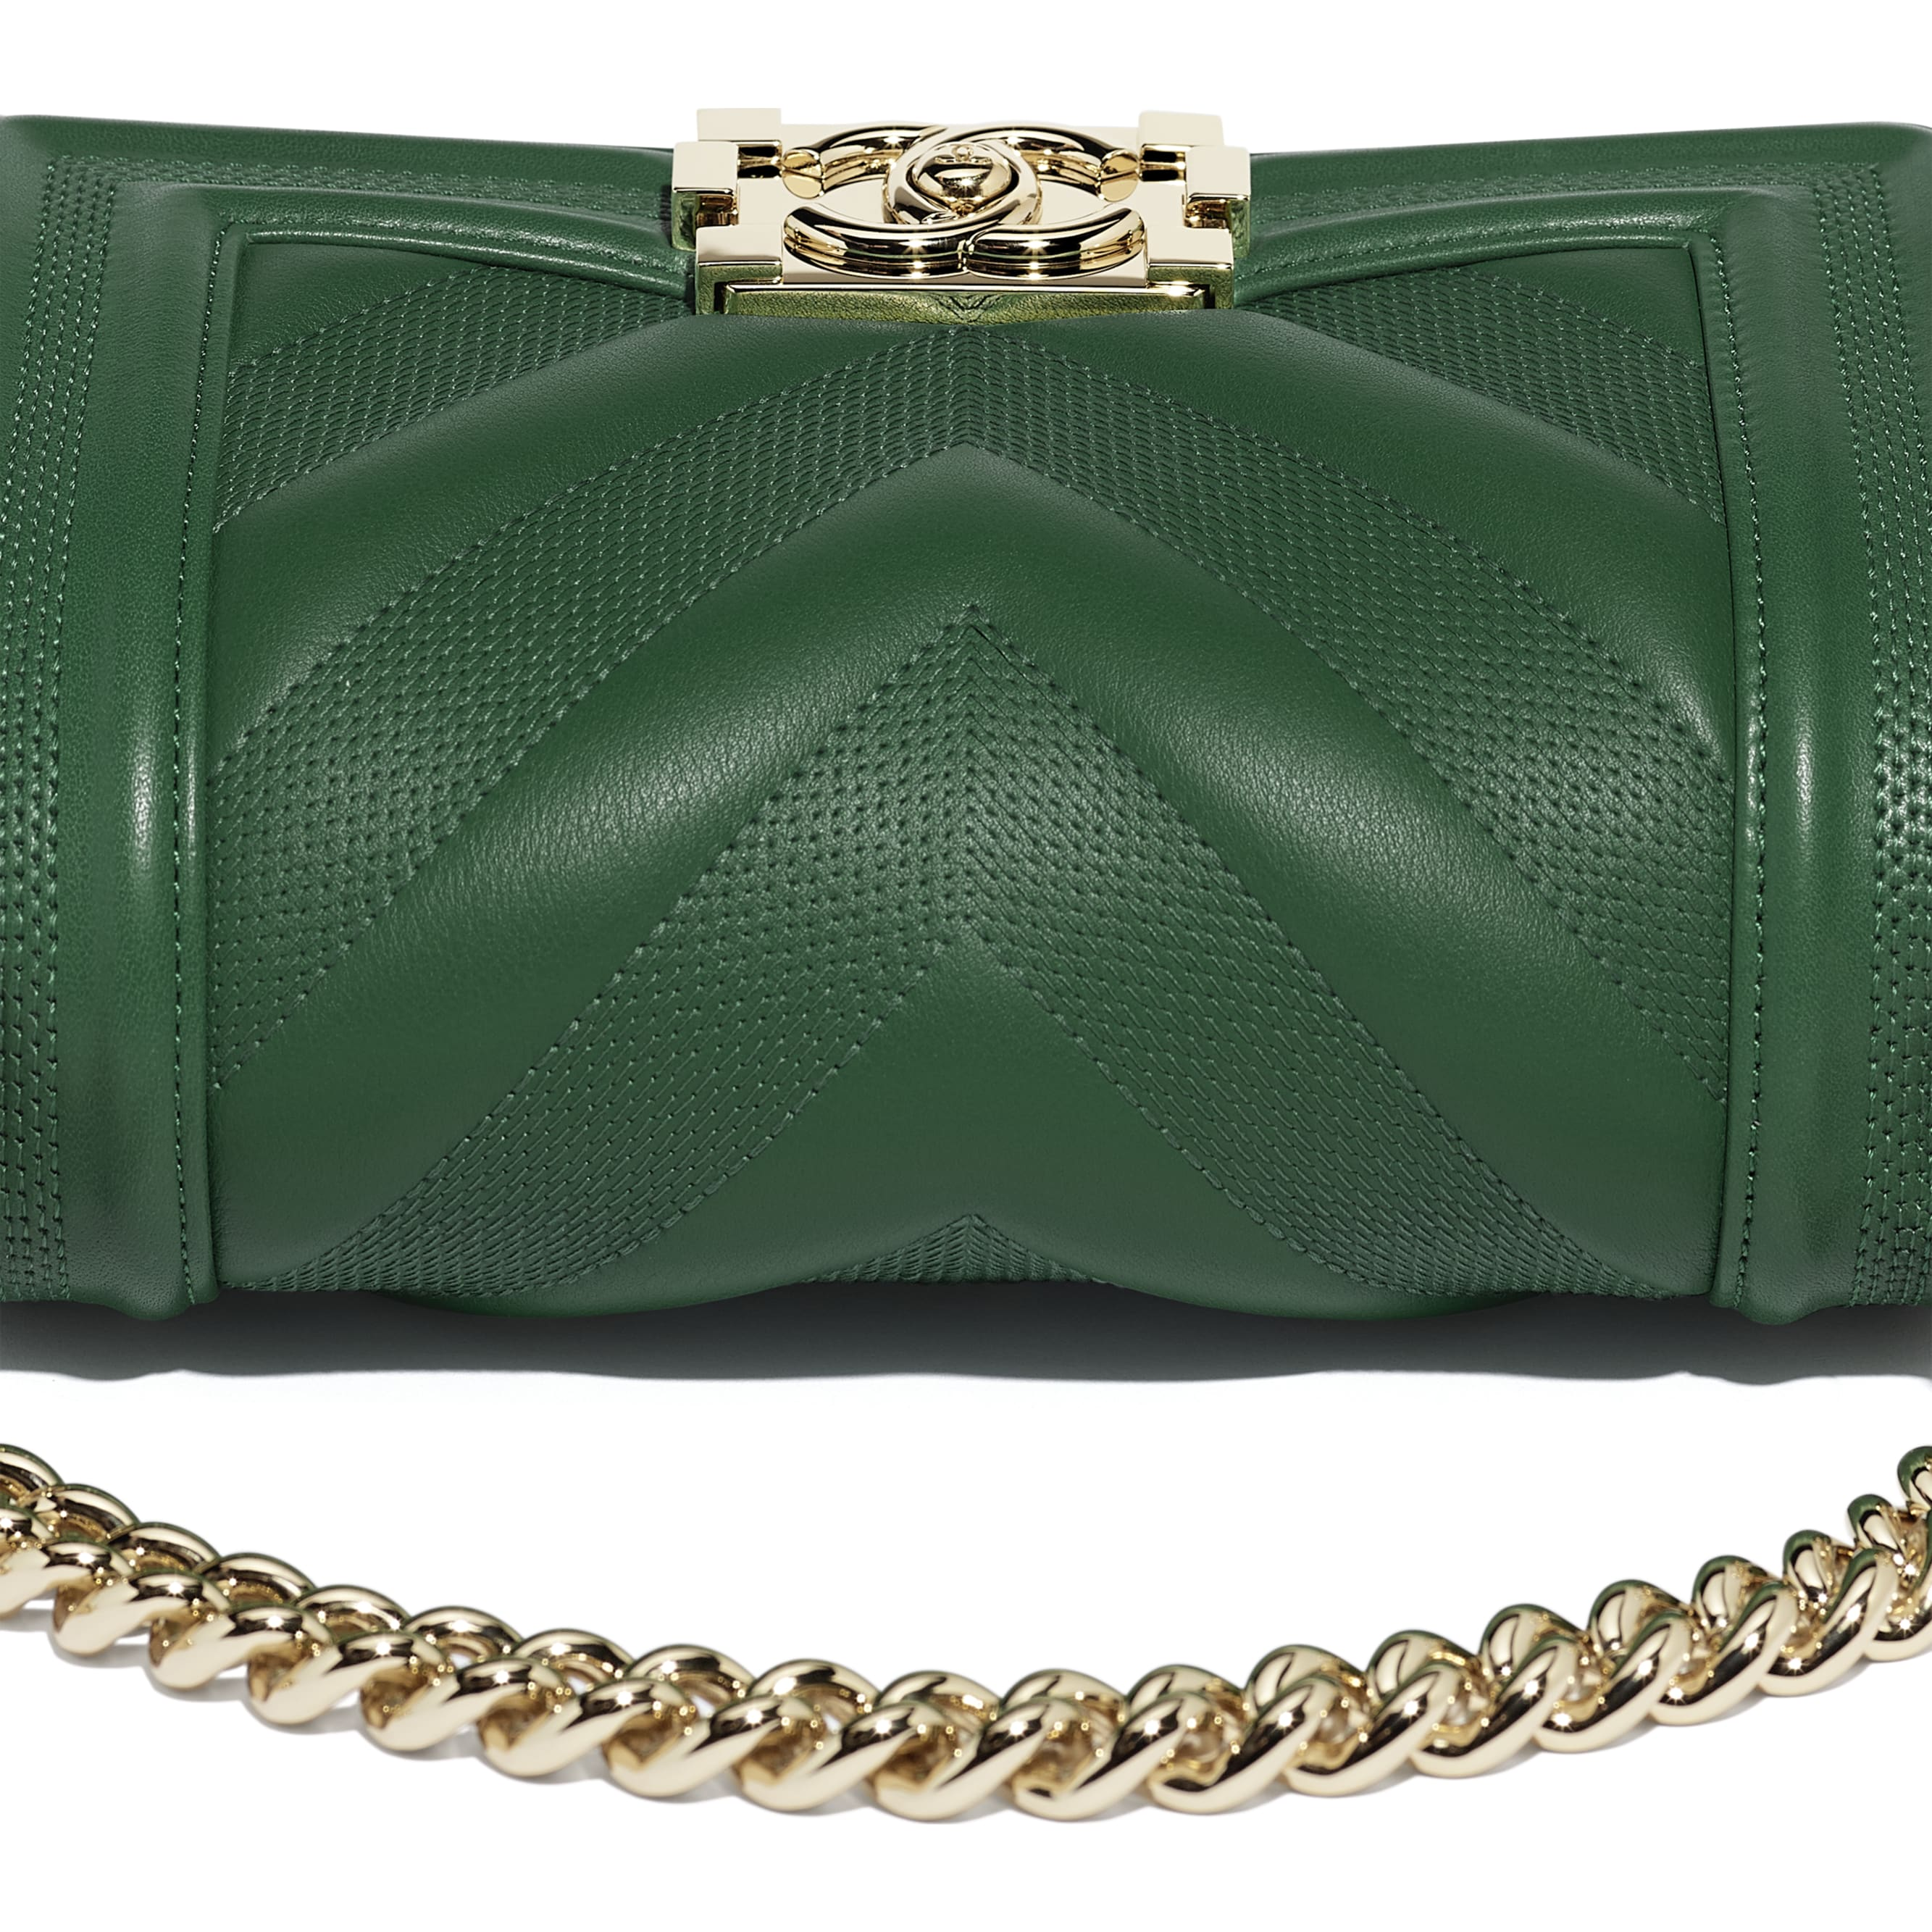 Small BOY CHANEL Handbag - Green - Calfskin & Gold-Tone Metal - Extra view - see standard sized version